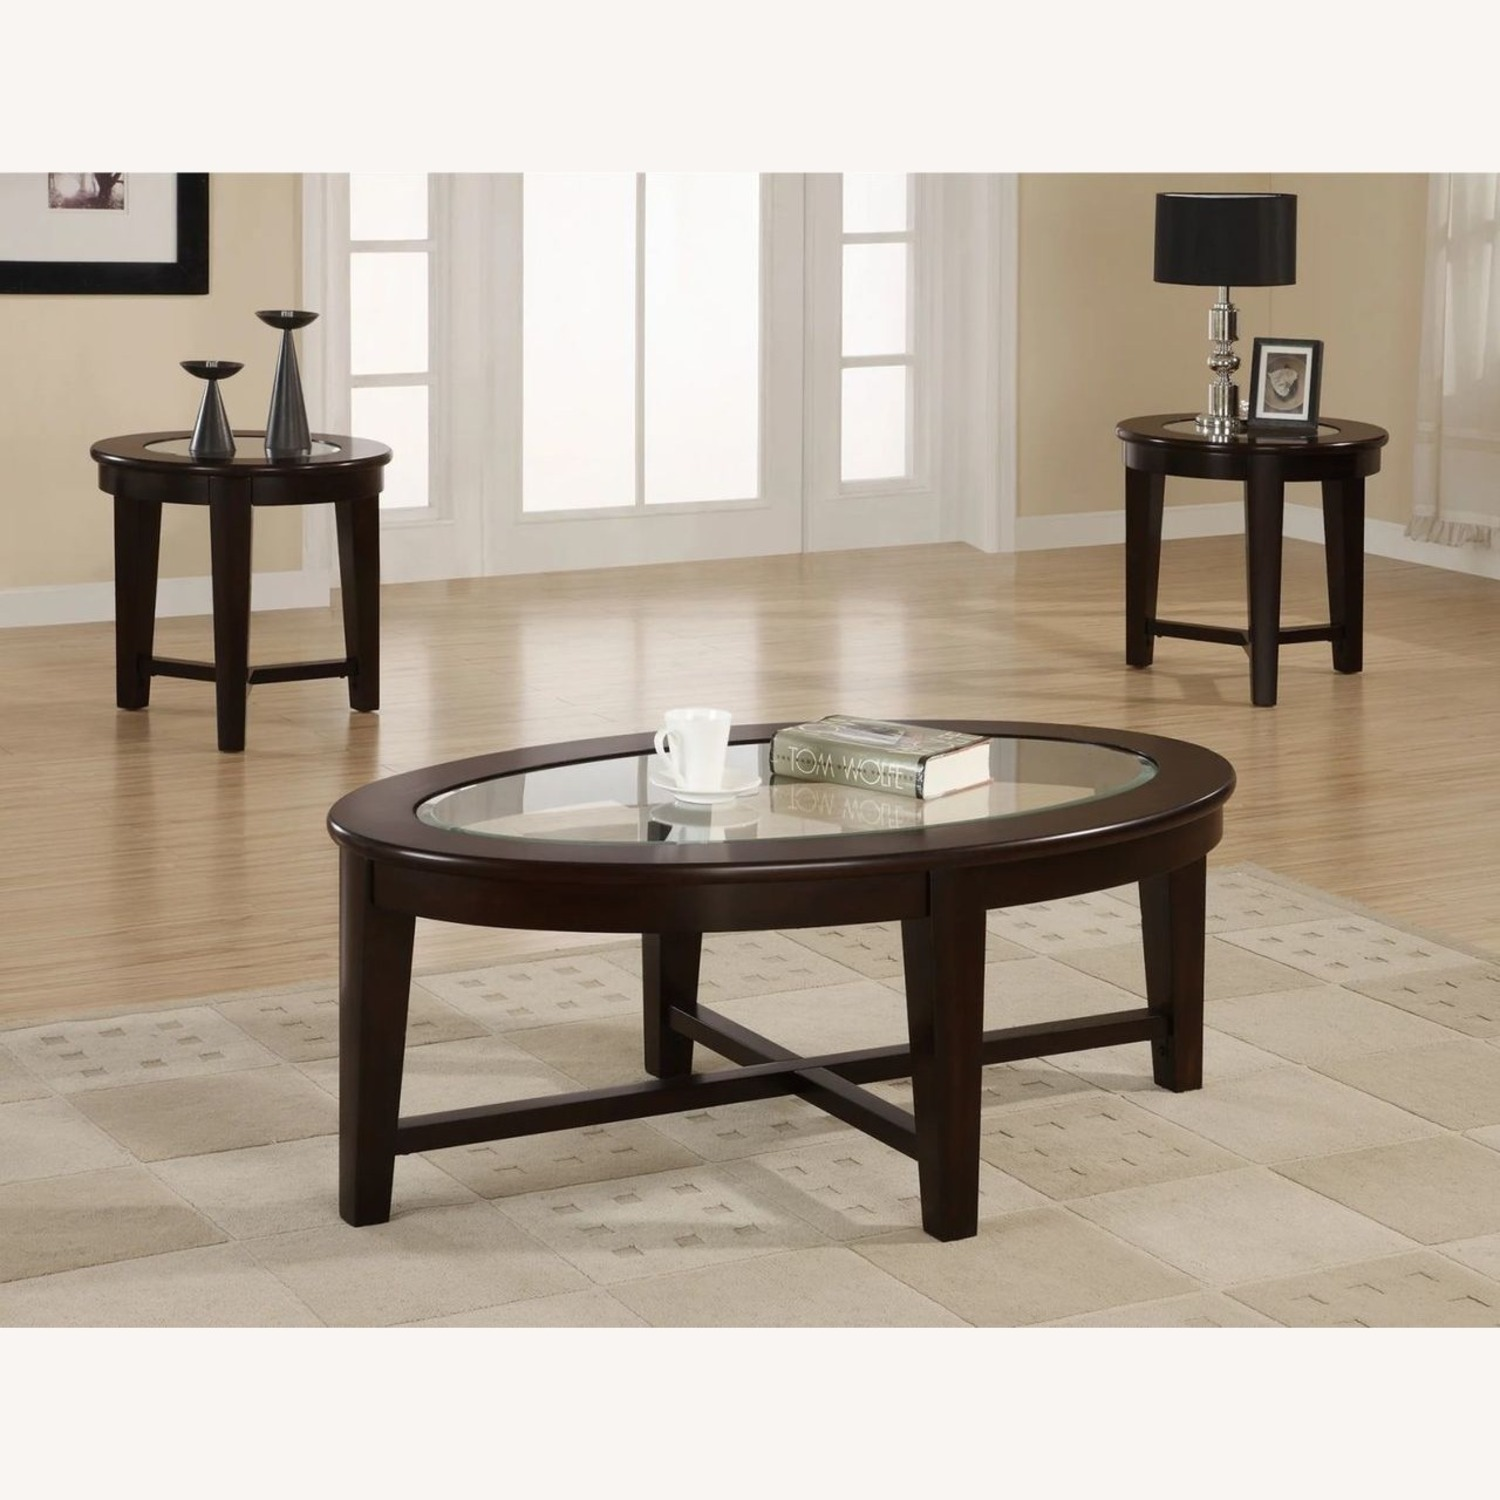 3-Piece Occasional Set In Cappuccino Finish - image-3